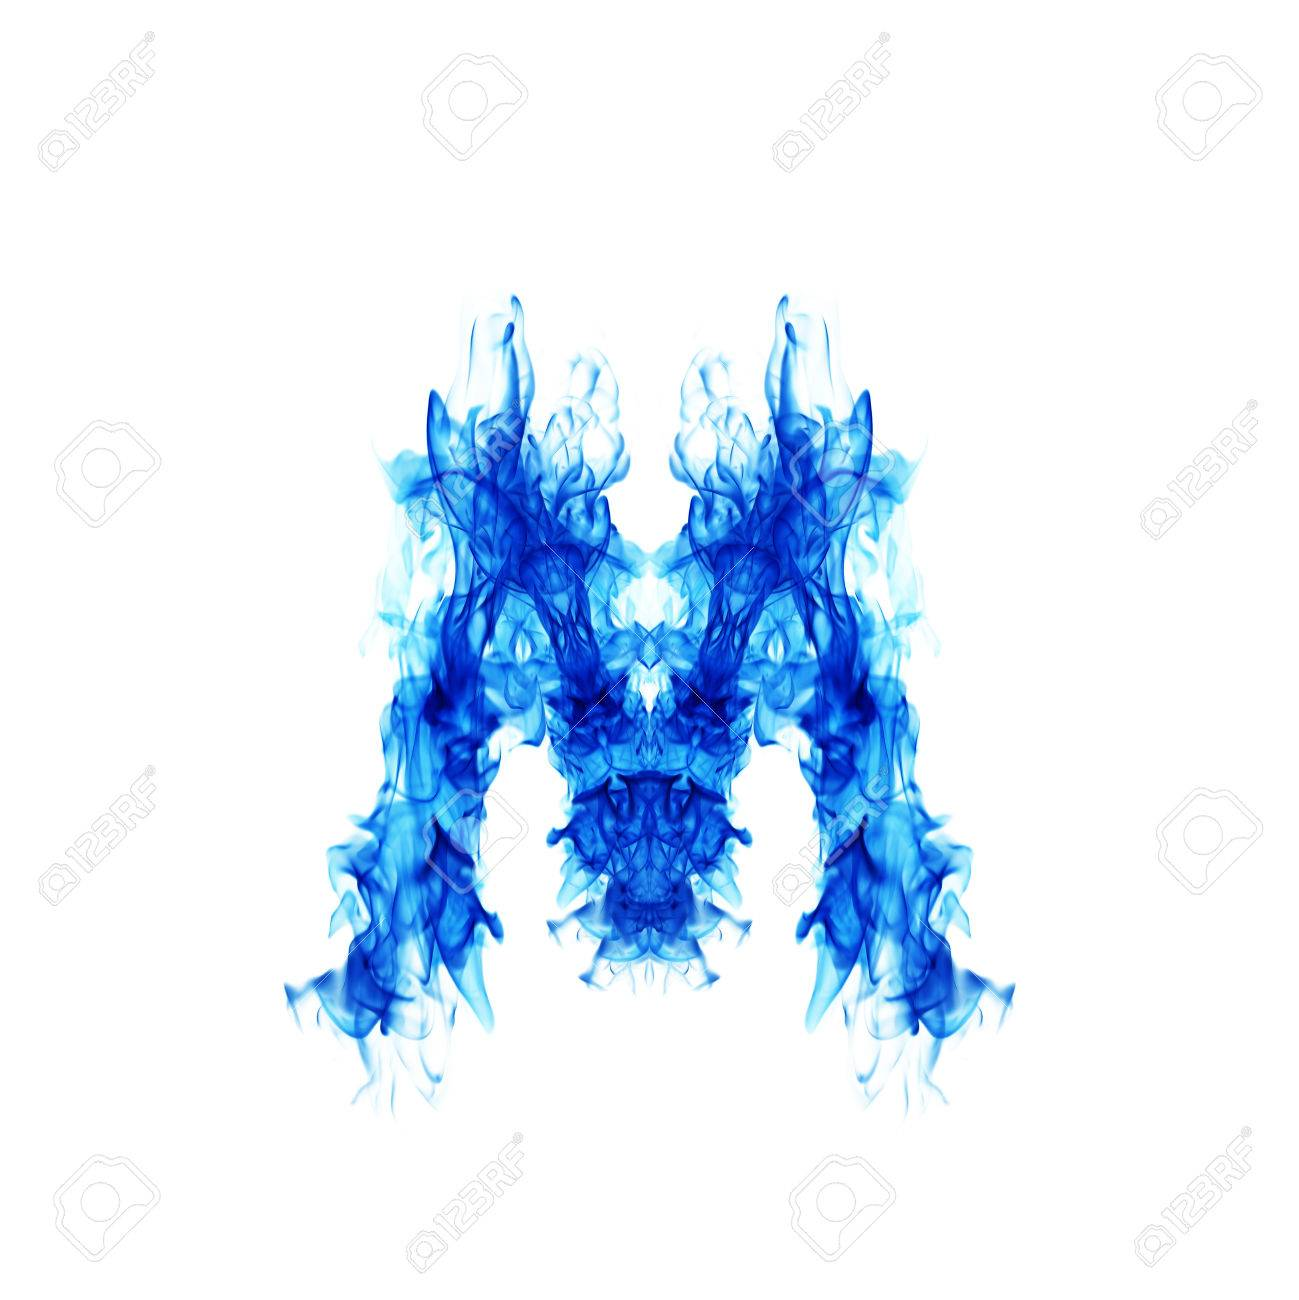 Blue Fire Letter M Stock Photo Picture And Royalty Free Image